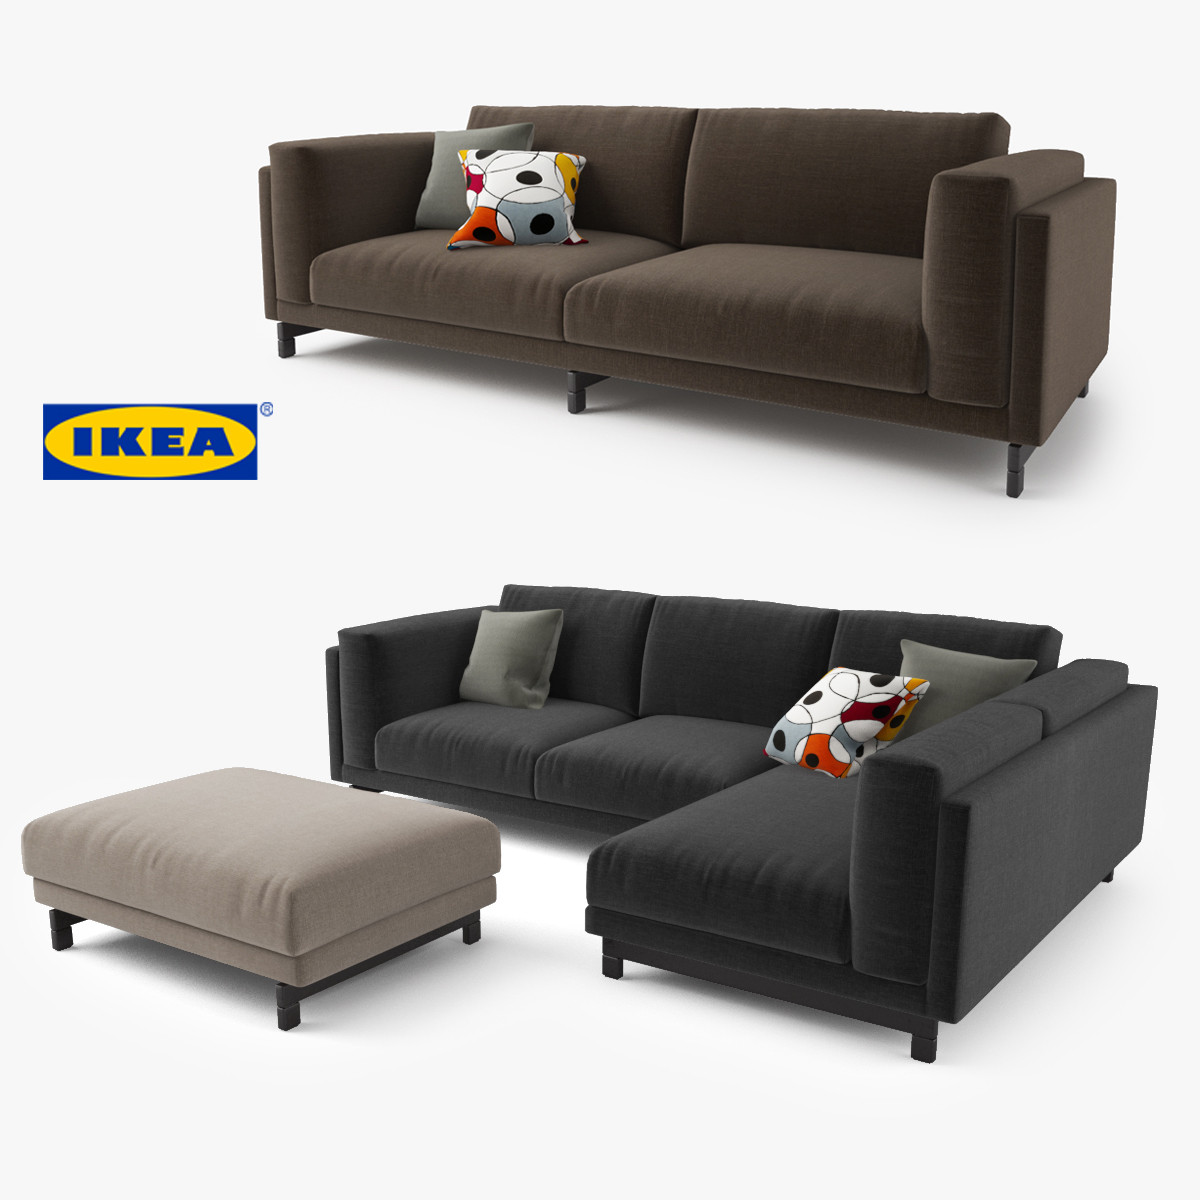 Ikea Nockeby Sofa 3d Model Ikea Nockeby Series Sofa